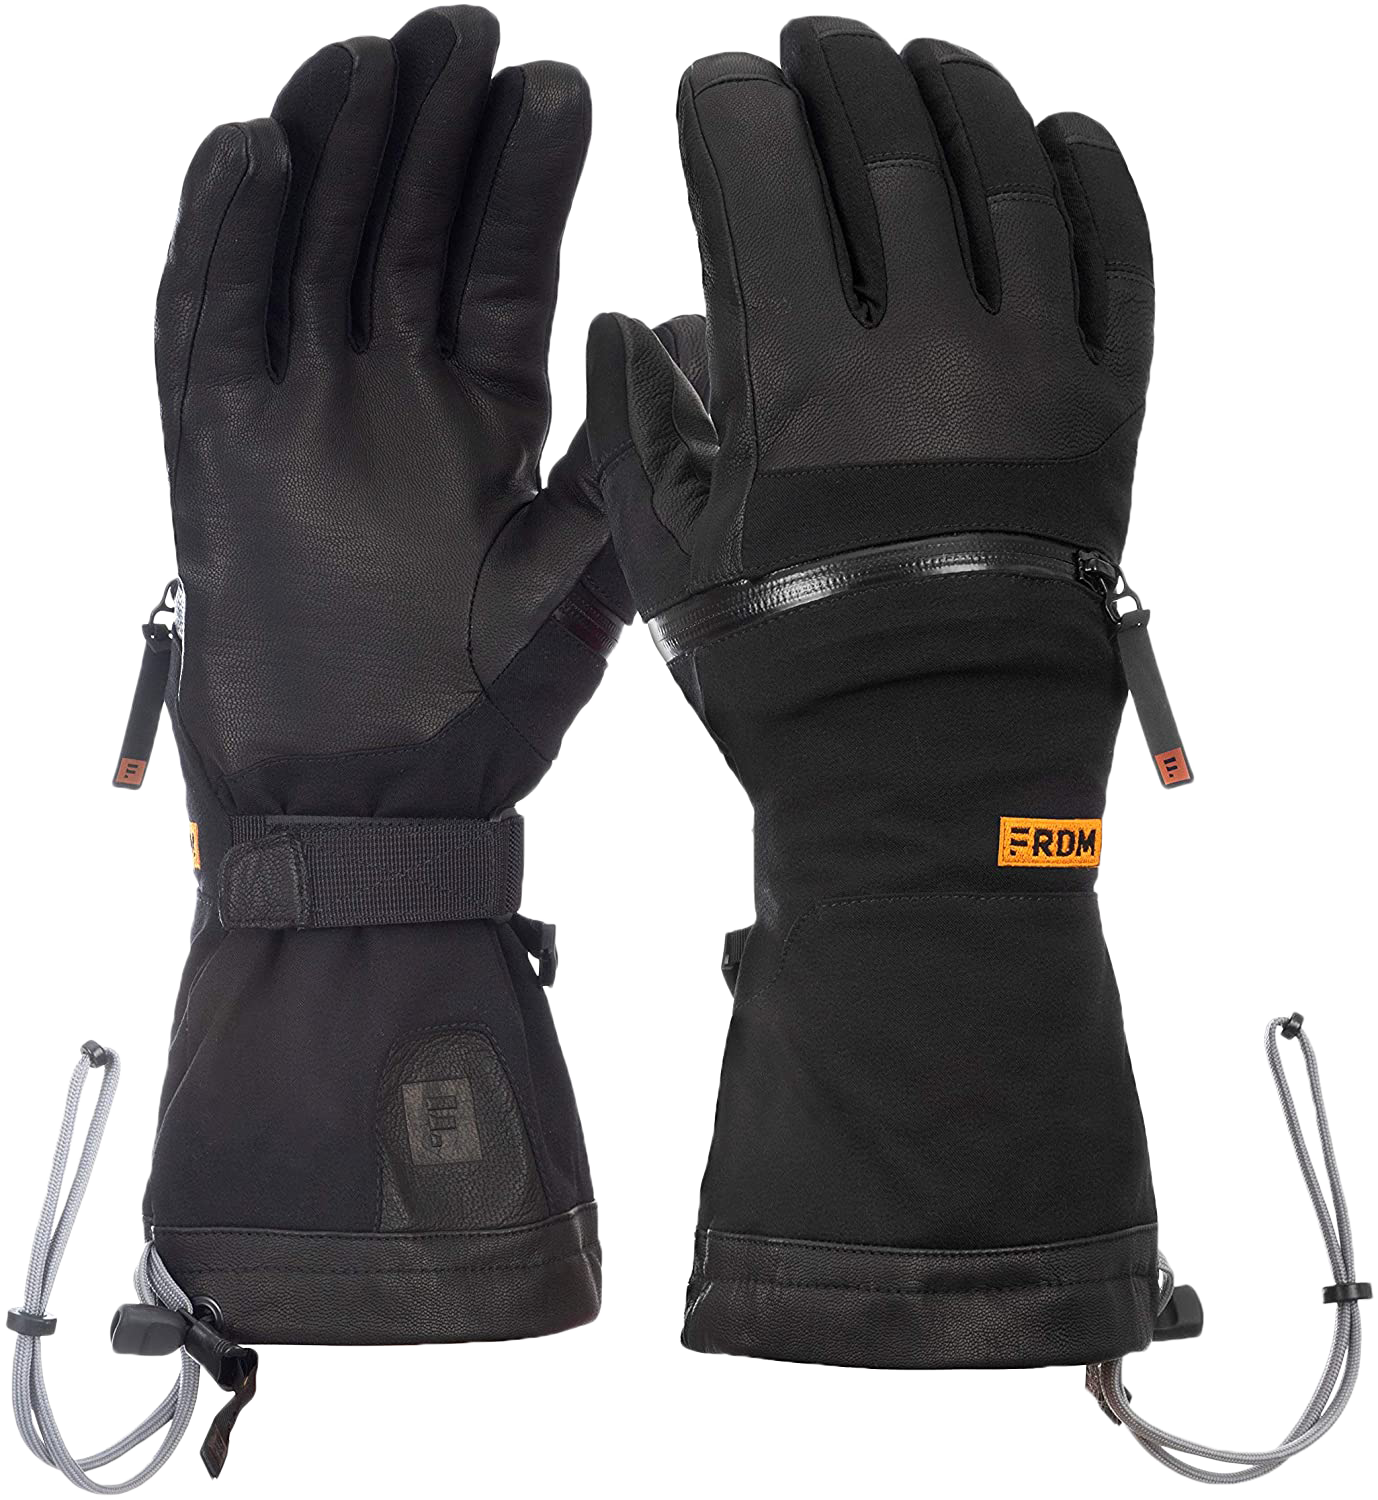 FRDM Elevate Cold Weather Snow Gloves- Best Quality and Best for Snow Sports